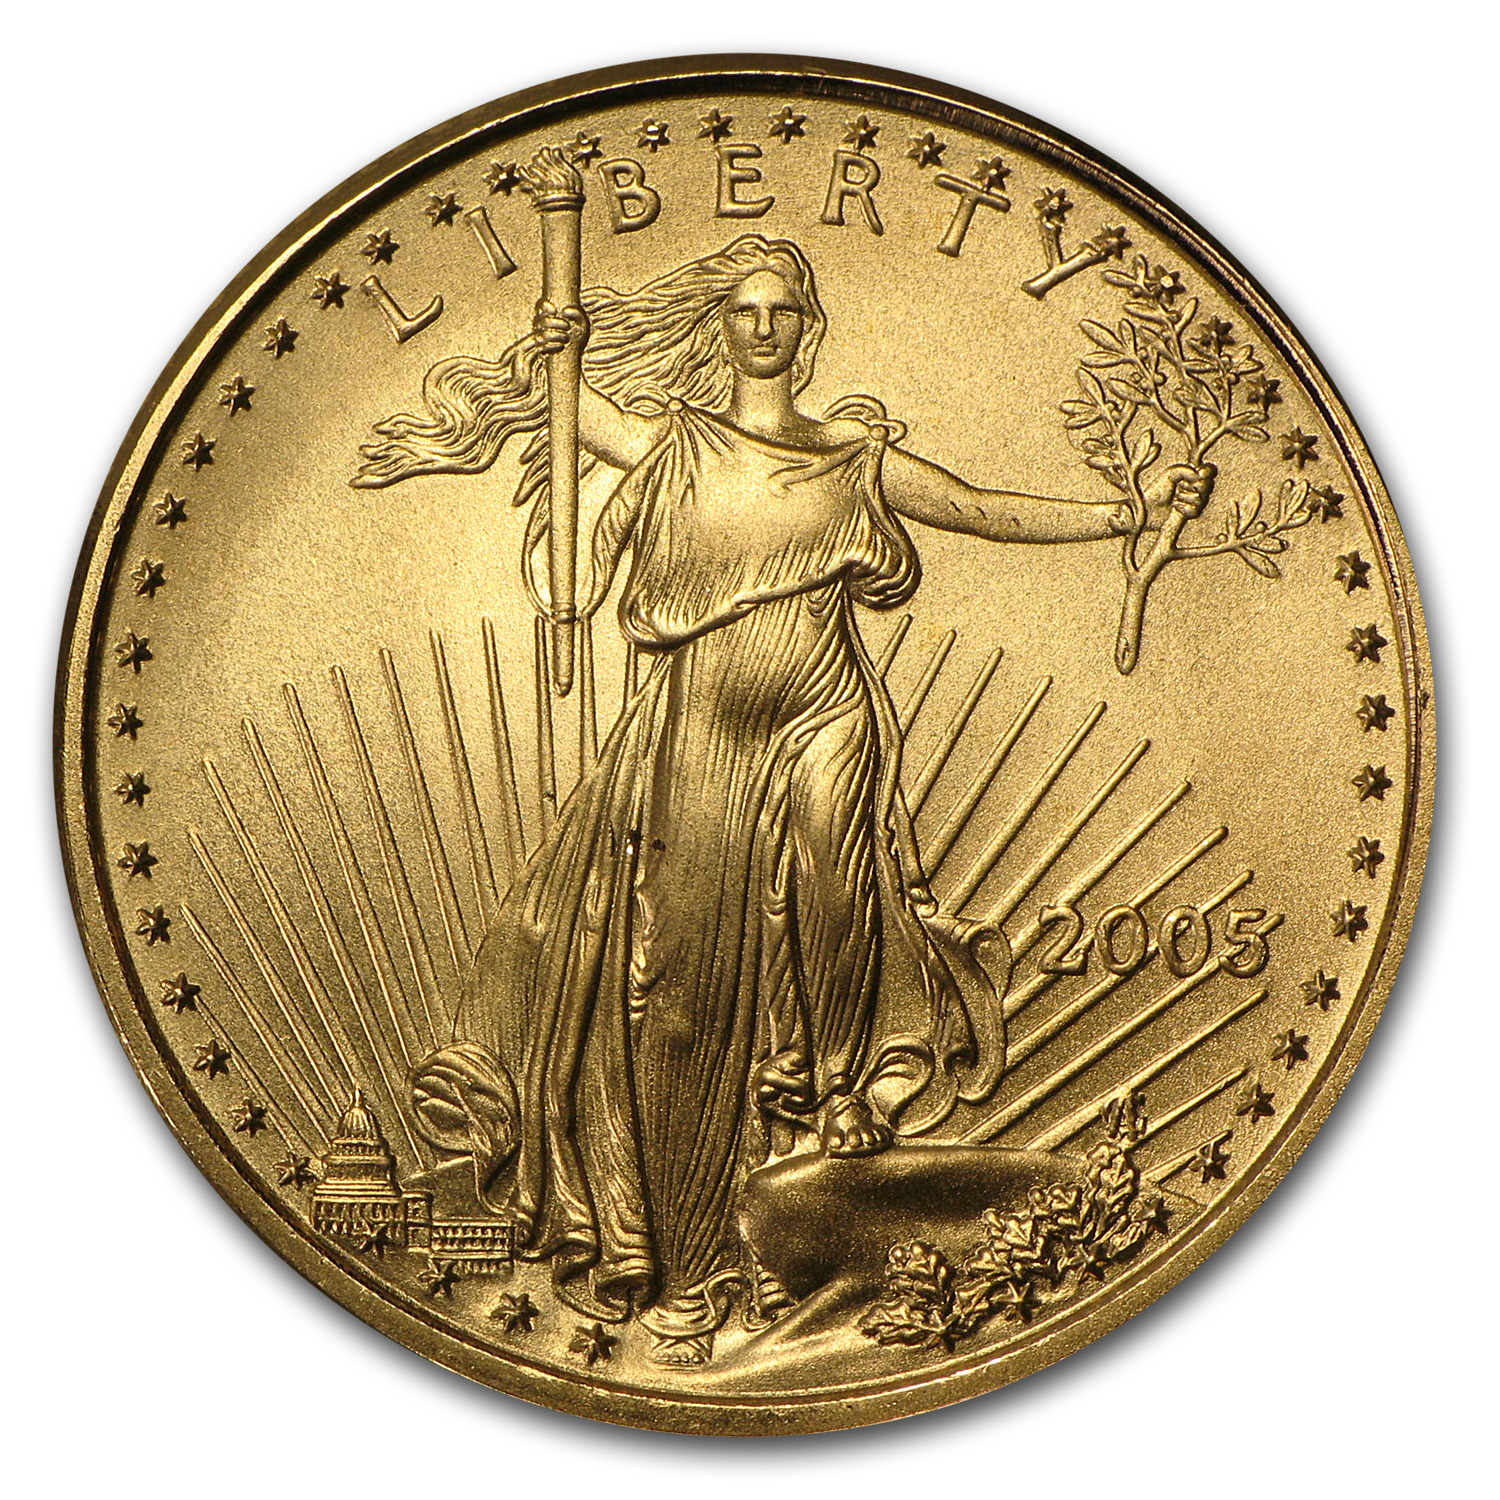 2005 1/4 oz Gold American Eagle BU